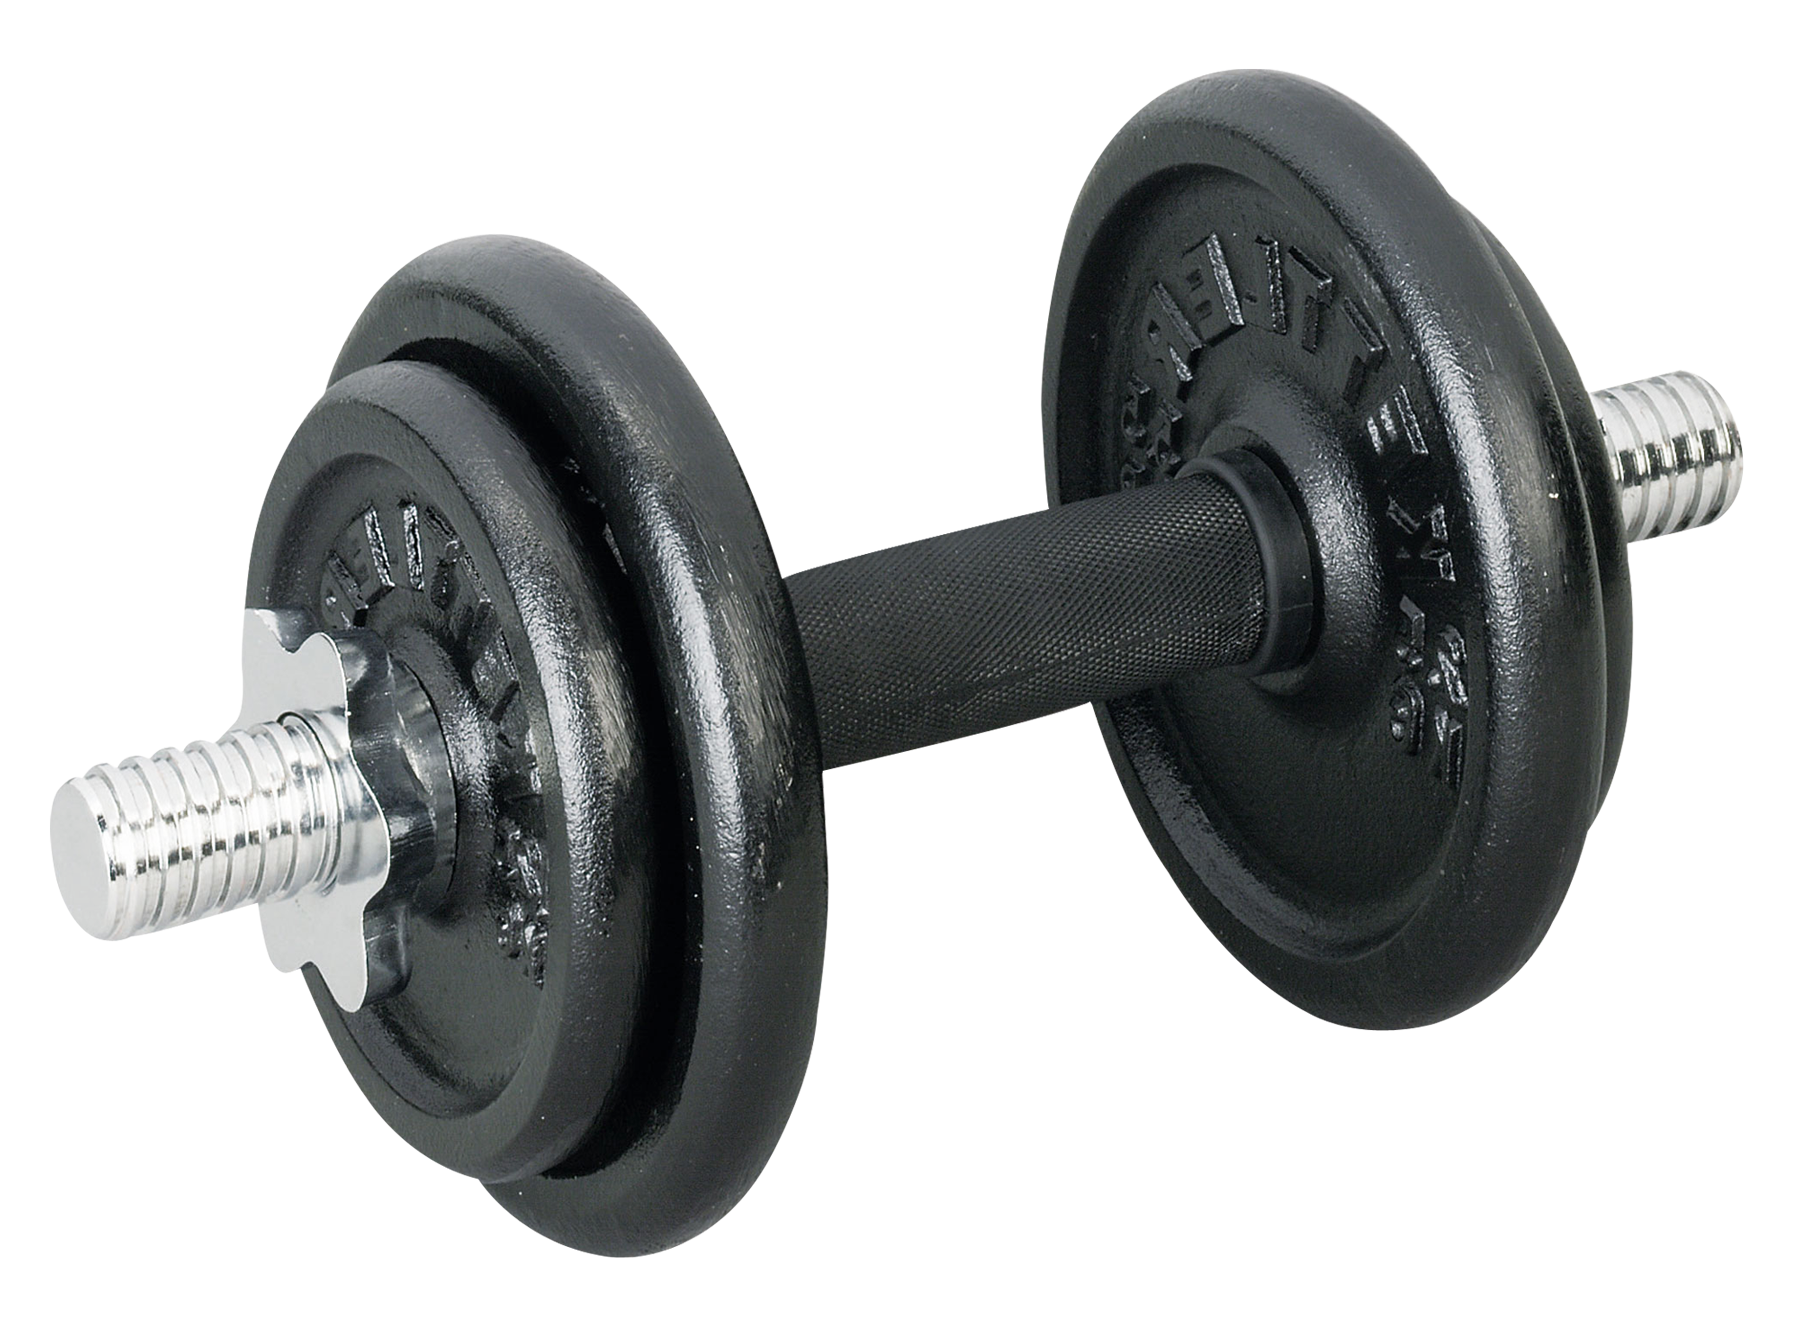 dumbbell hantel png images download crazypng #35168